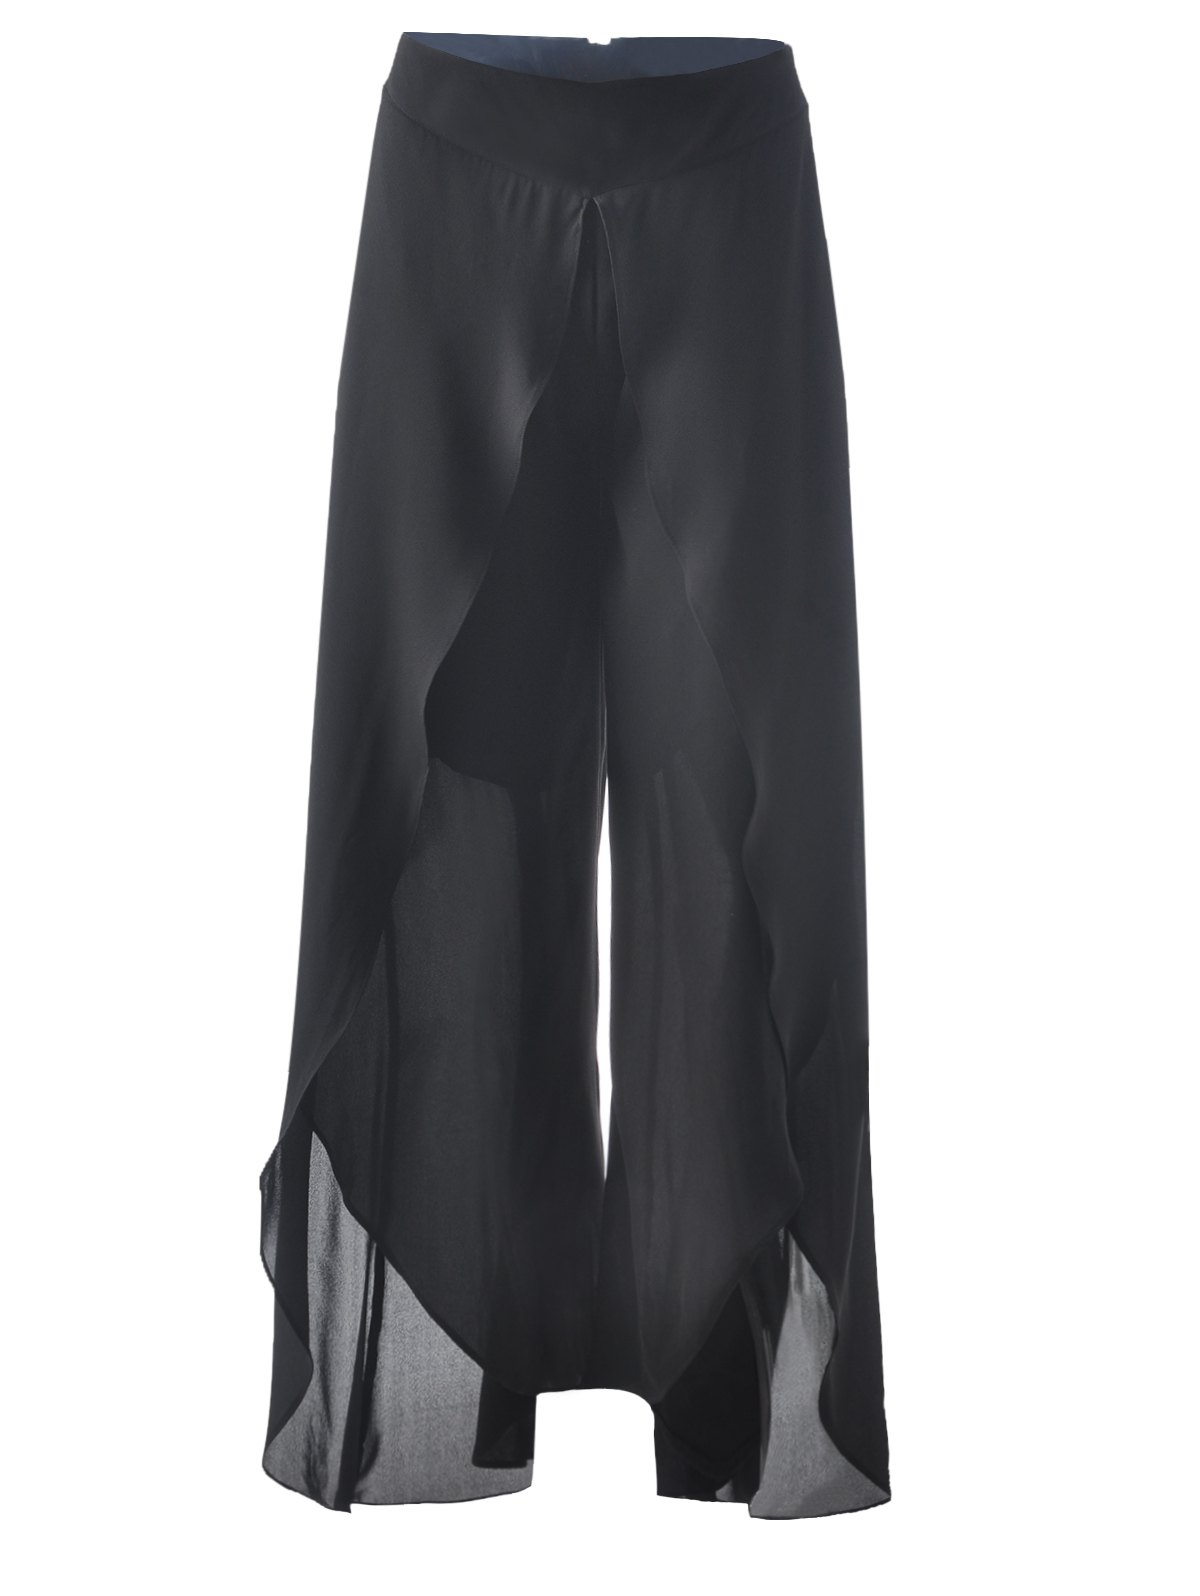 Fashionable Black Irregular Pants For Women